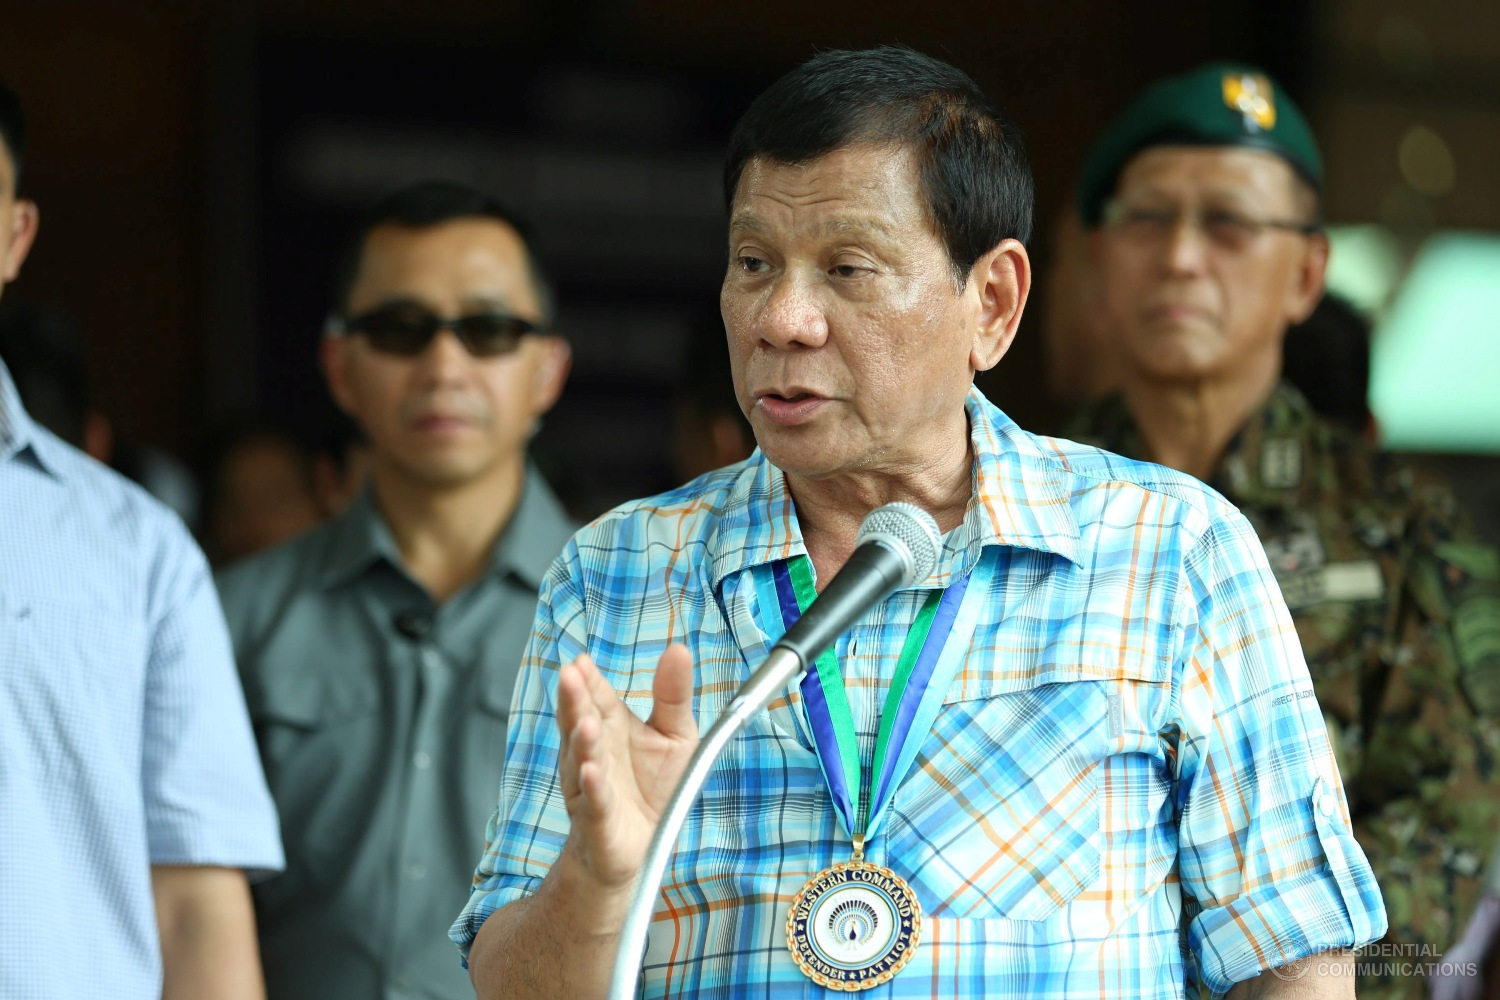 President Rodrigo Roa Duterte's visit to the Kingdom of Saudi Arabia is a resounding success in terms of improving the lot of overseas Filipino workers (OFWs) and strengthening the Philippines' ties with the Middle East country. (Photo: KARL NORMAN ALONZO/Presidential Photo)